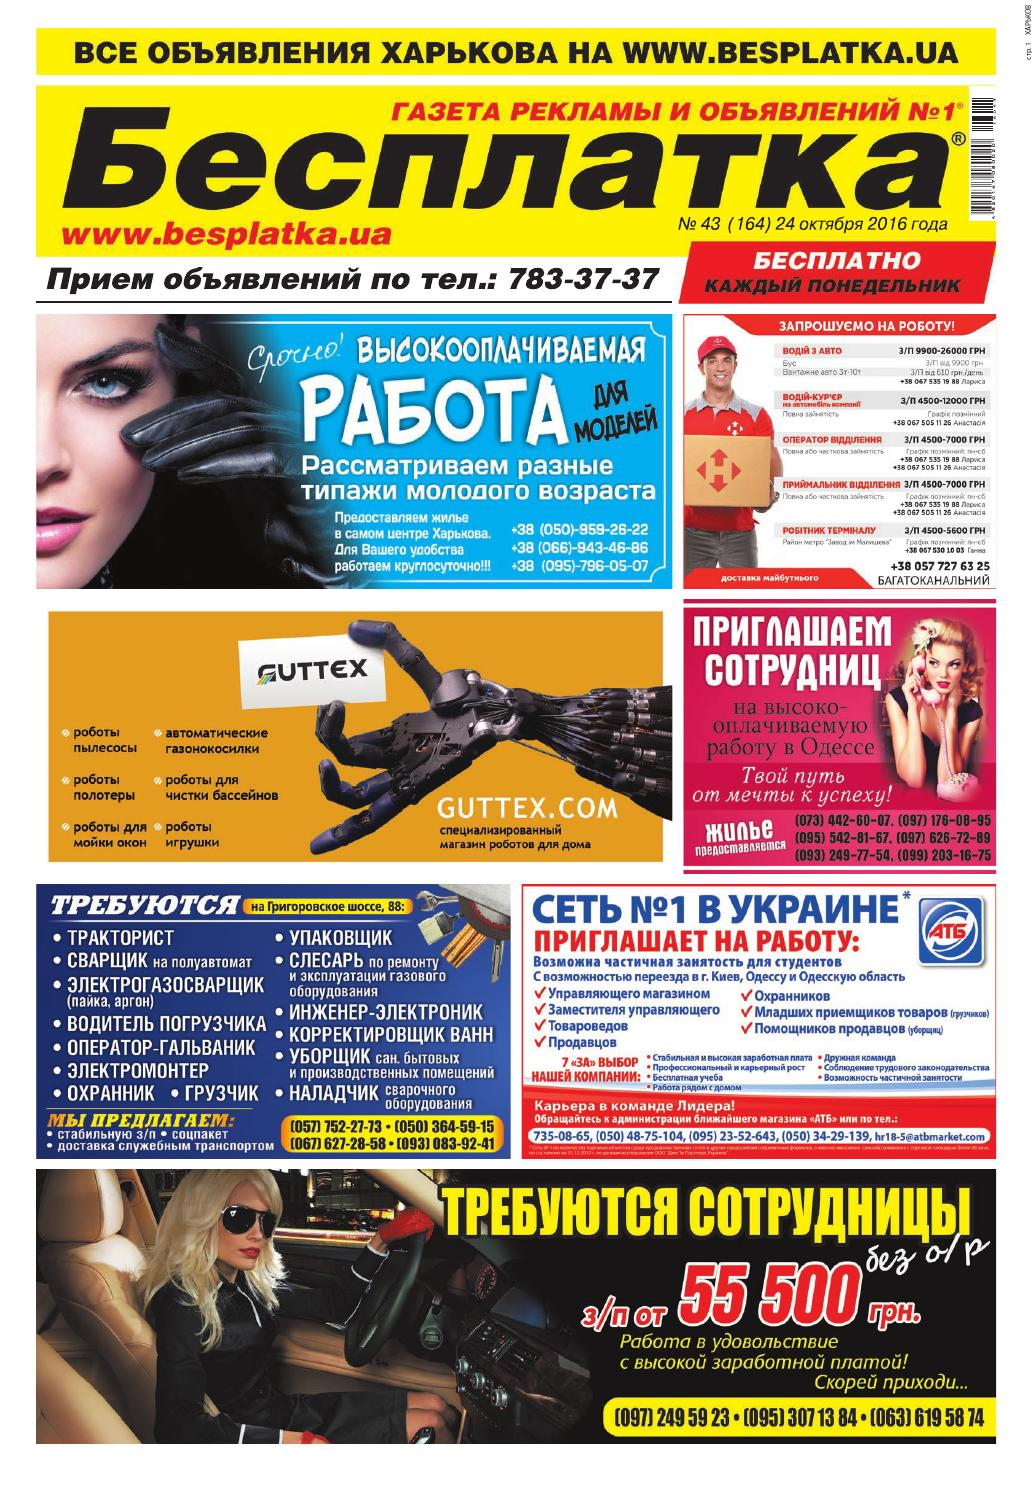 Besplatka  43 Харьков by besplatka ukraine - issuu 39b3f0a74d1